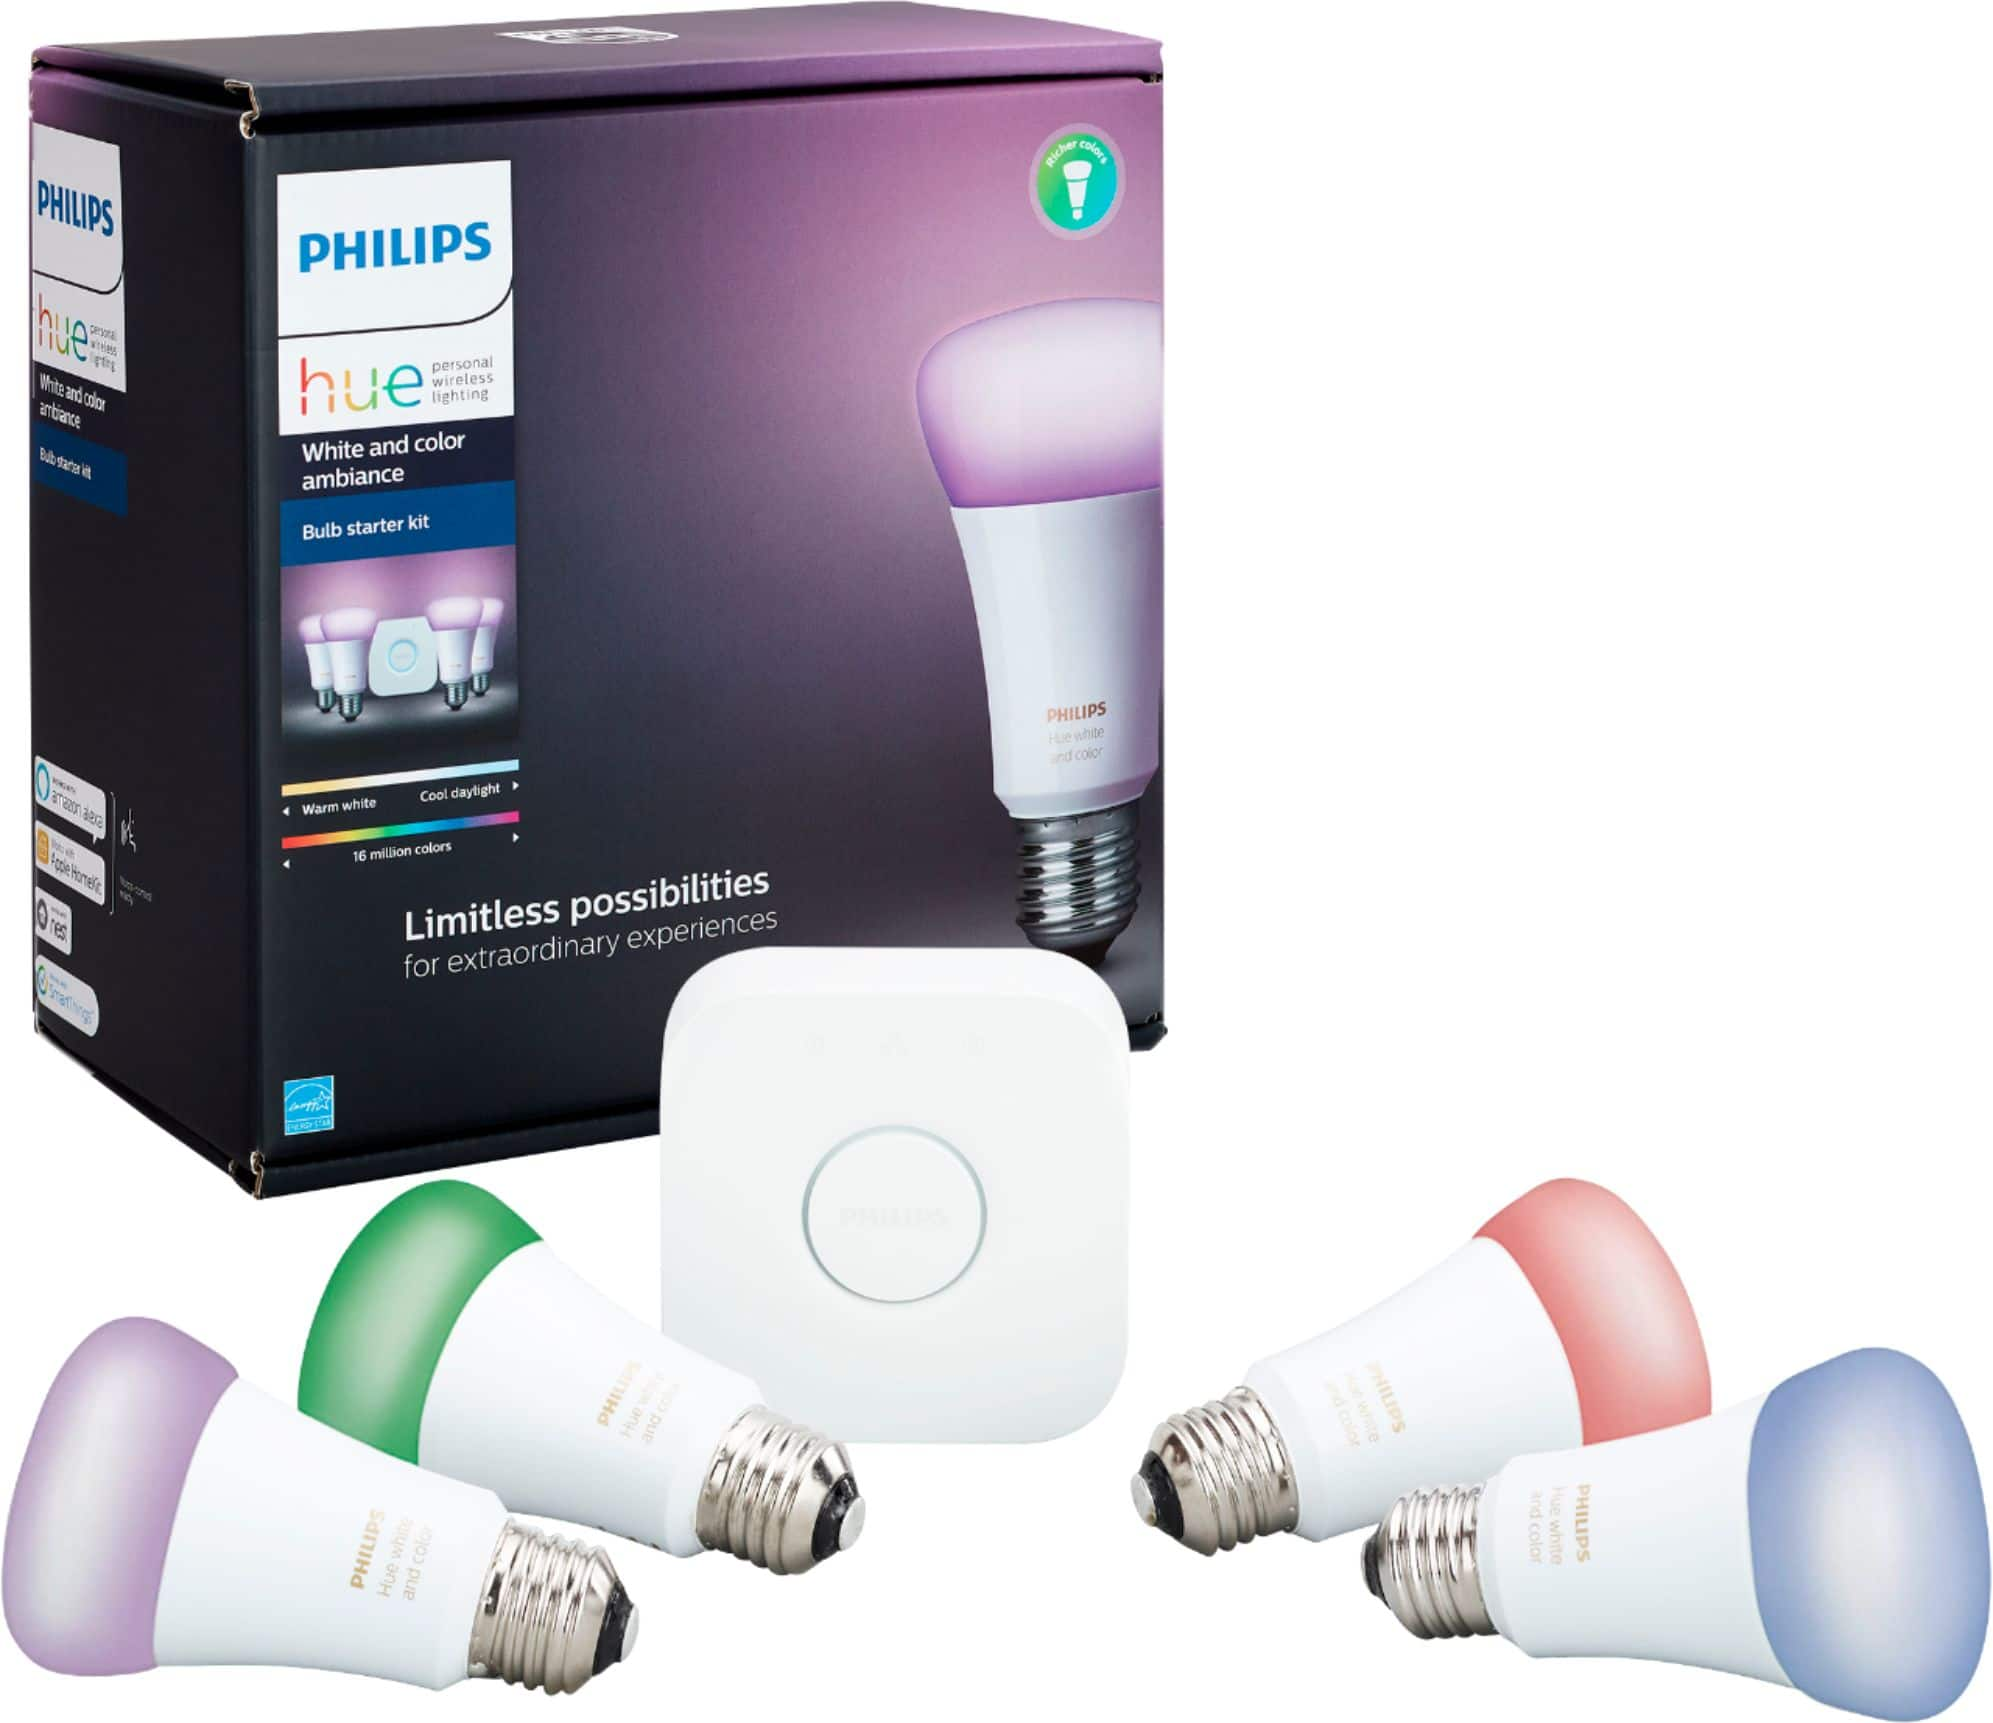 Philips - Hue White and Color Ambiance A19 LED Starter Kit with 2 Echo Dots